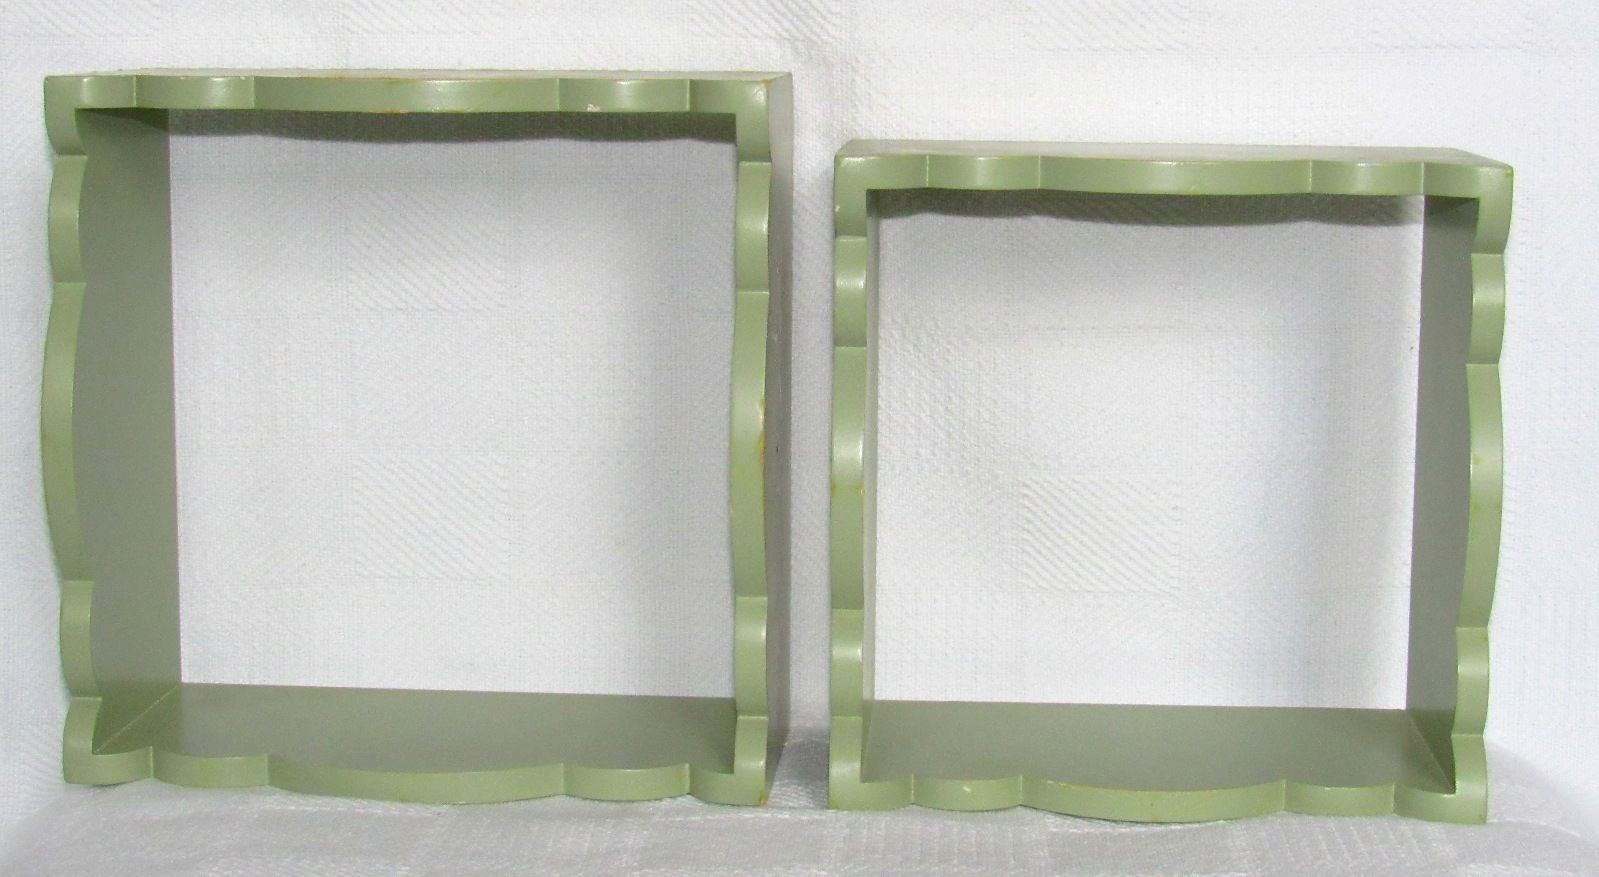 Set of 2 Wood Shadow Box Wall Shelves Square with Scalloped Edges Sage Green